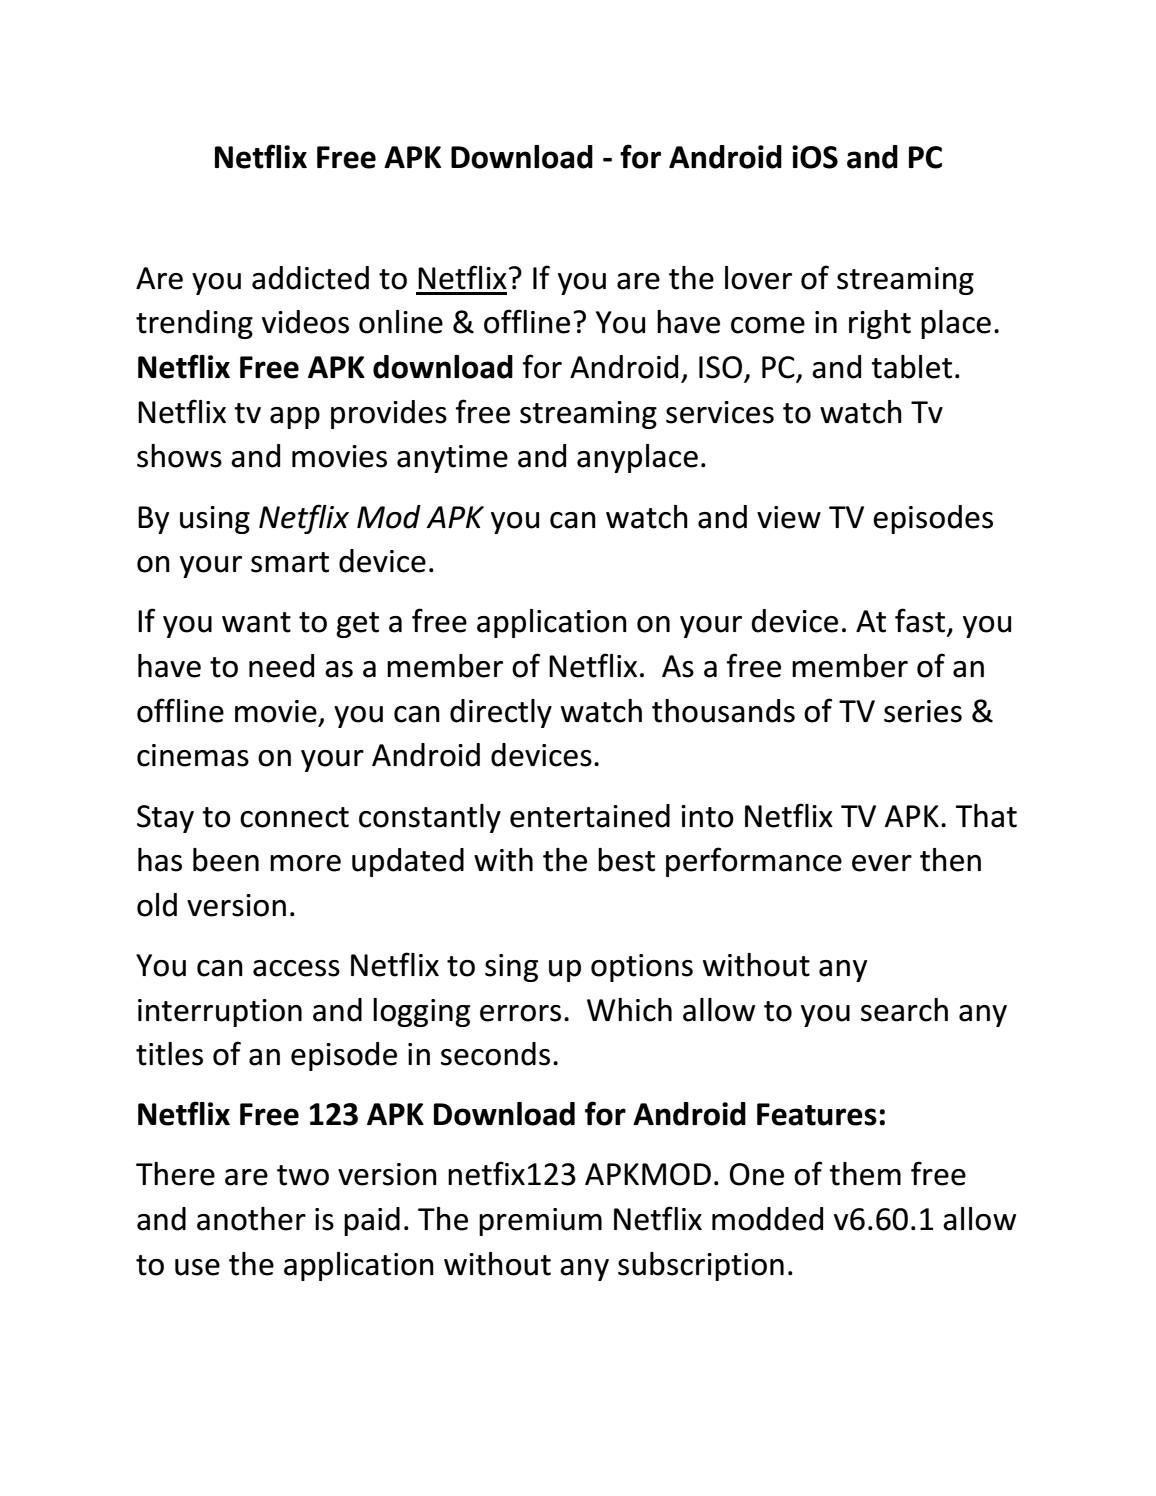 Netflix Free APK Download - for Android iOS and PC by